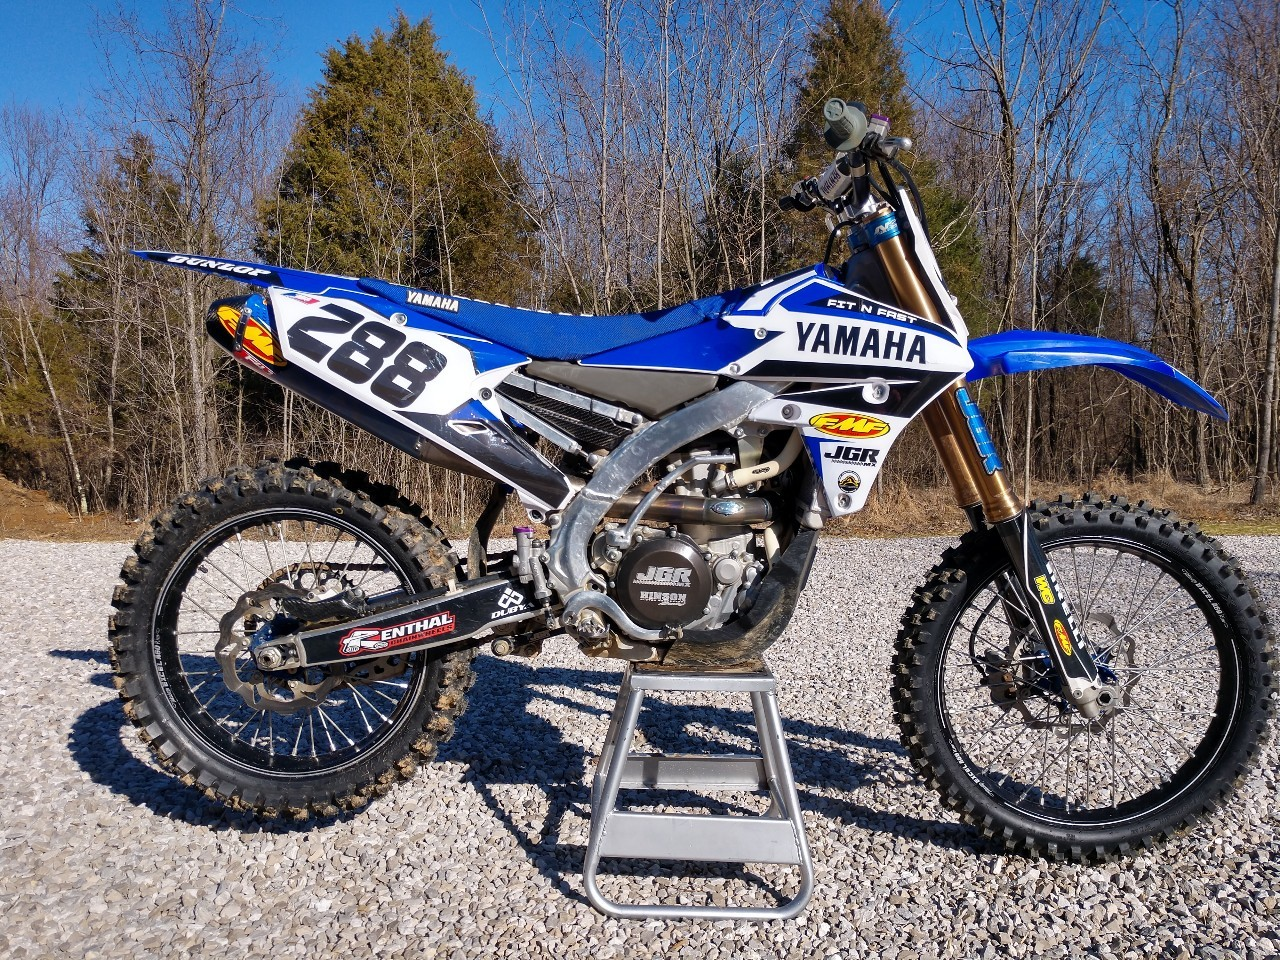 Indiana - Motorcycles For Sale - CycleTrader.com